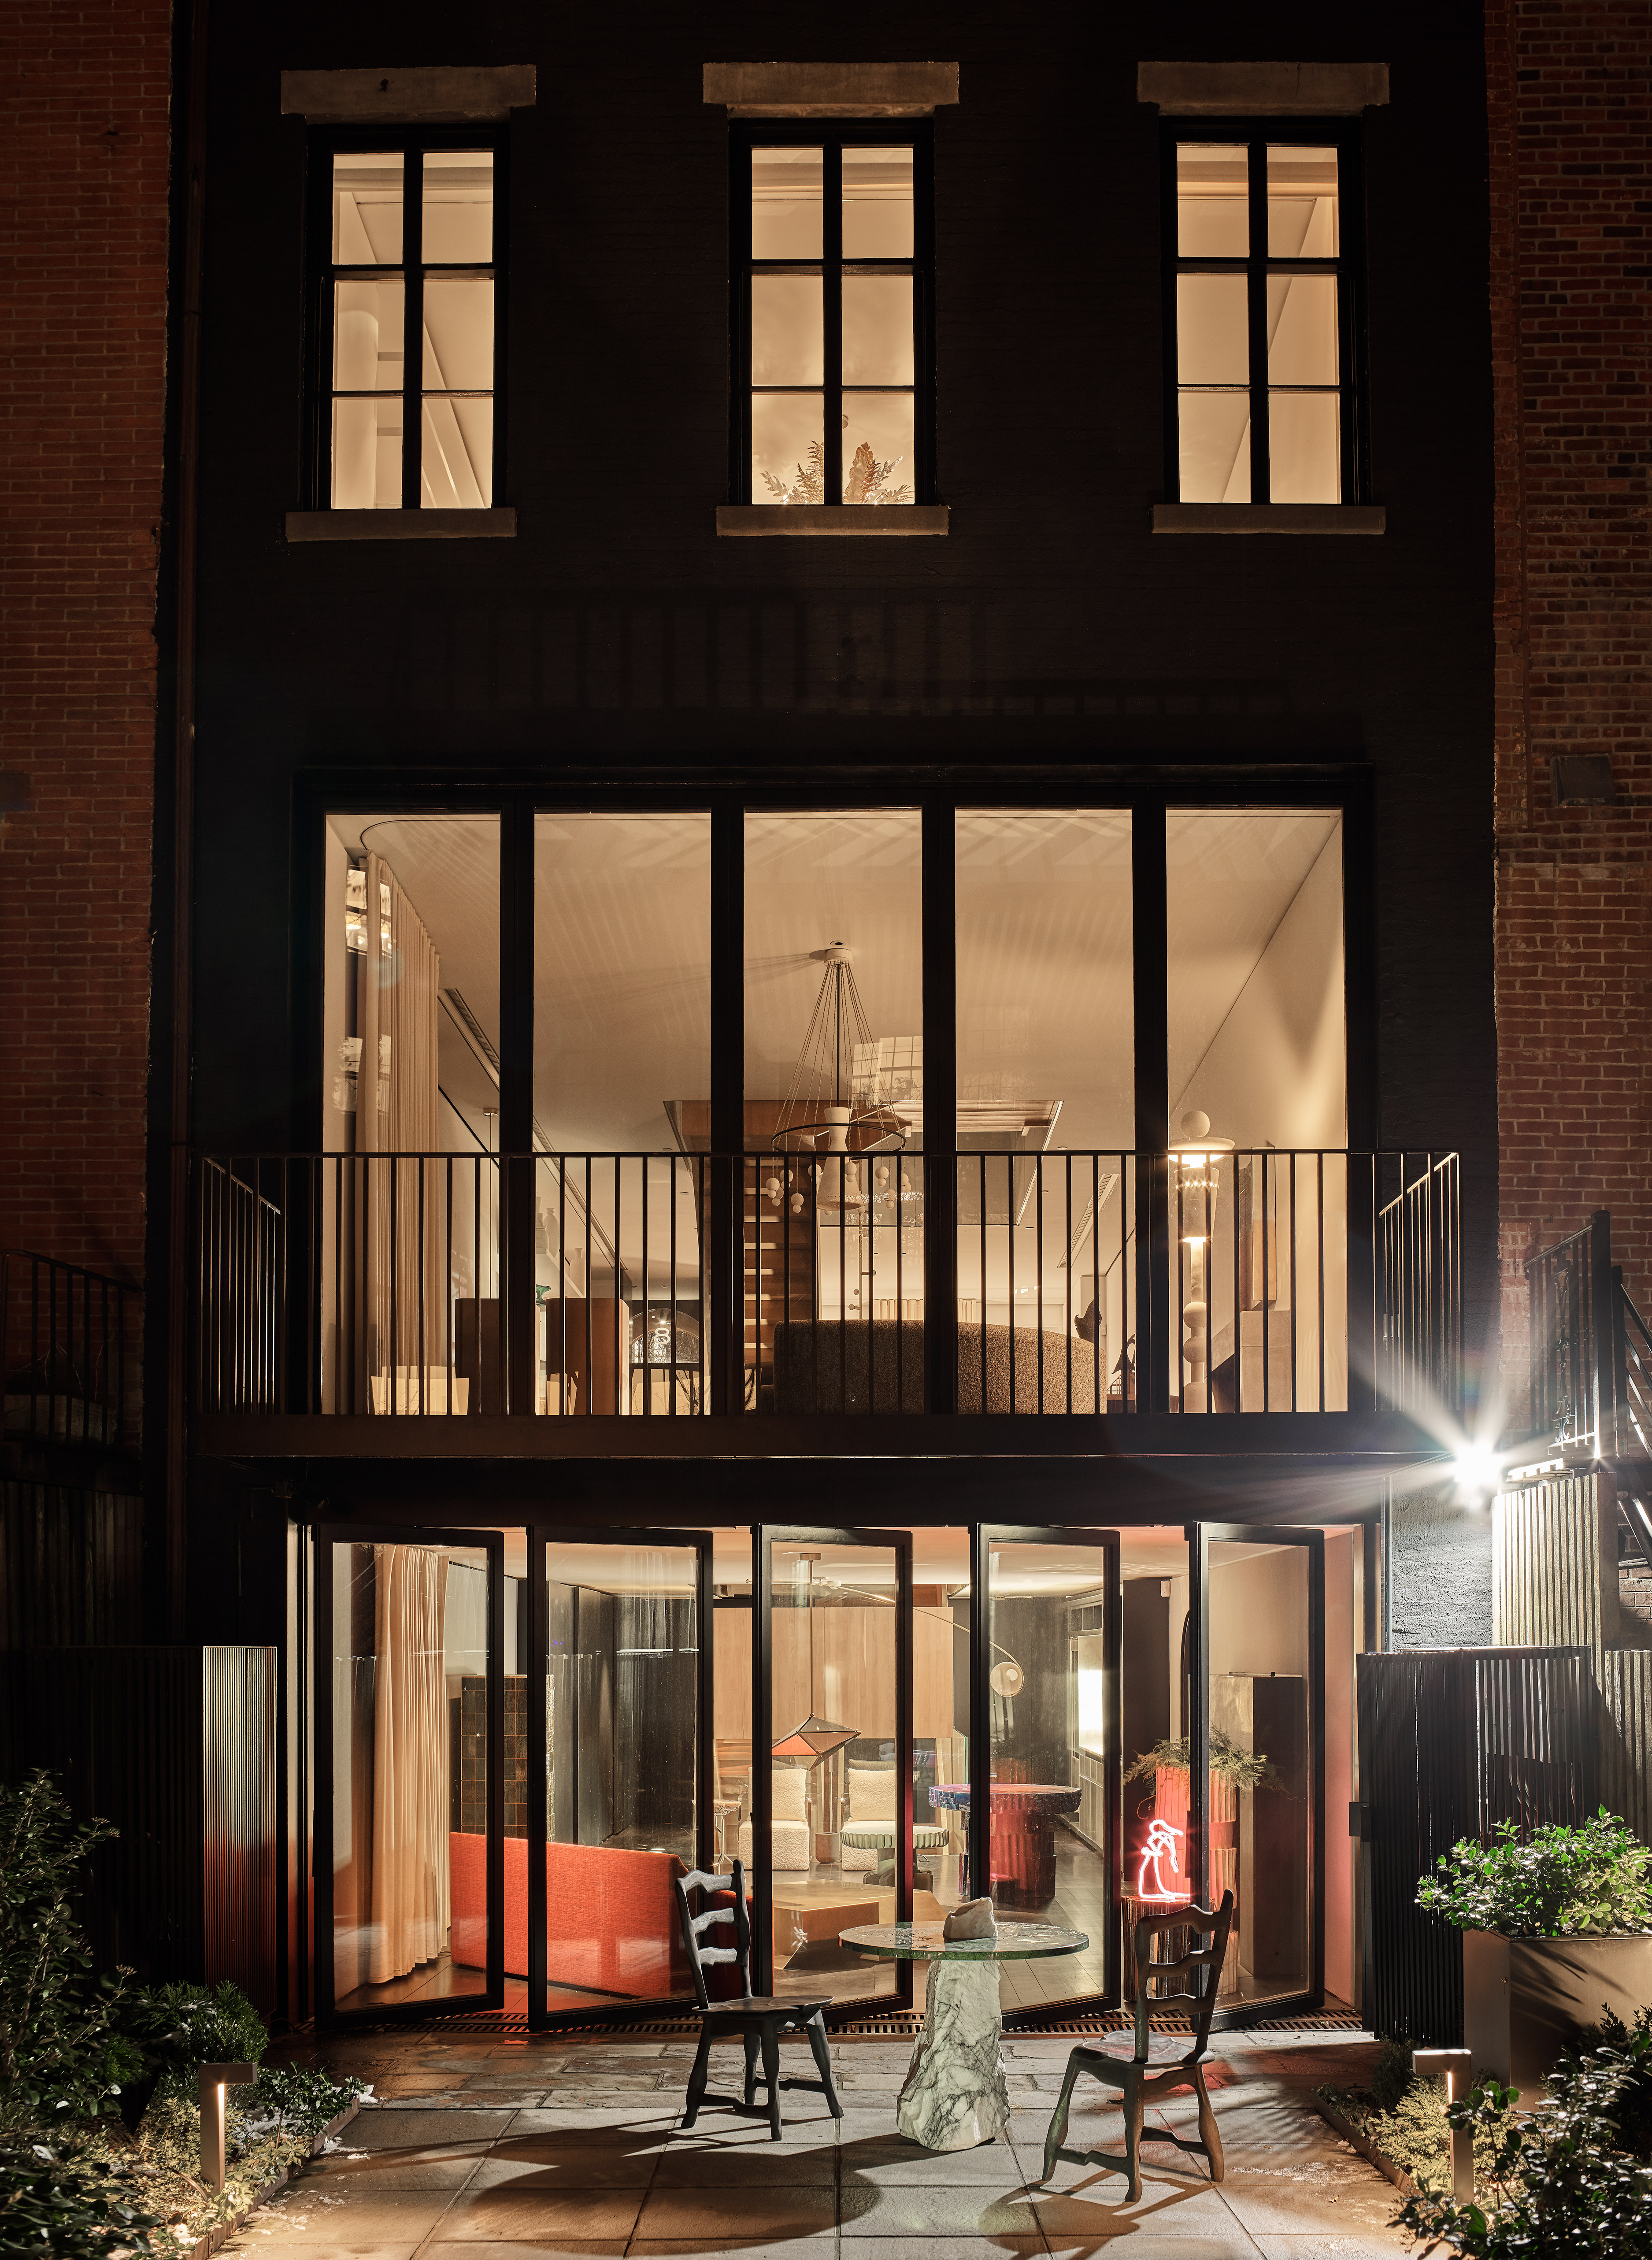 The rear of the Casa Perfect New York townhouse. Image: Douglas Friedman